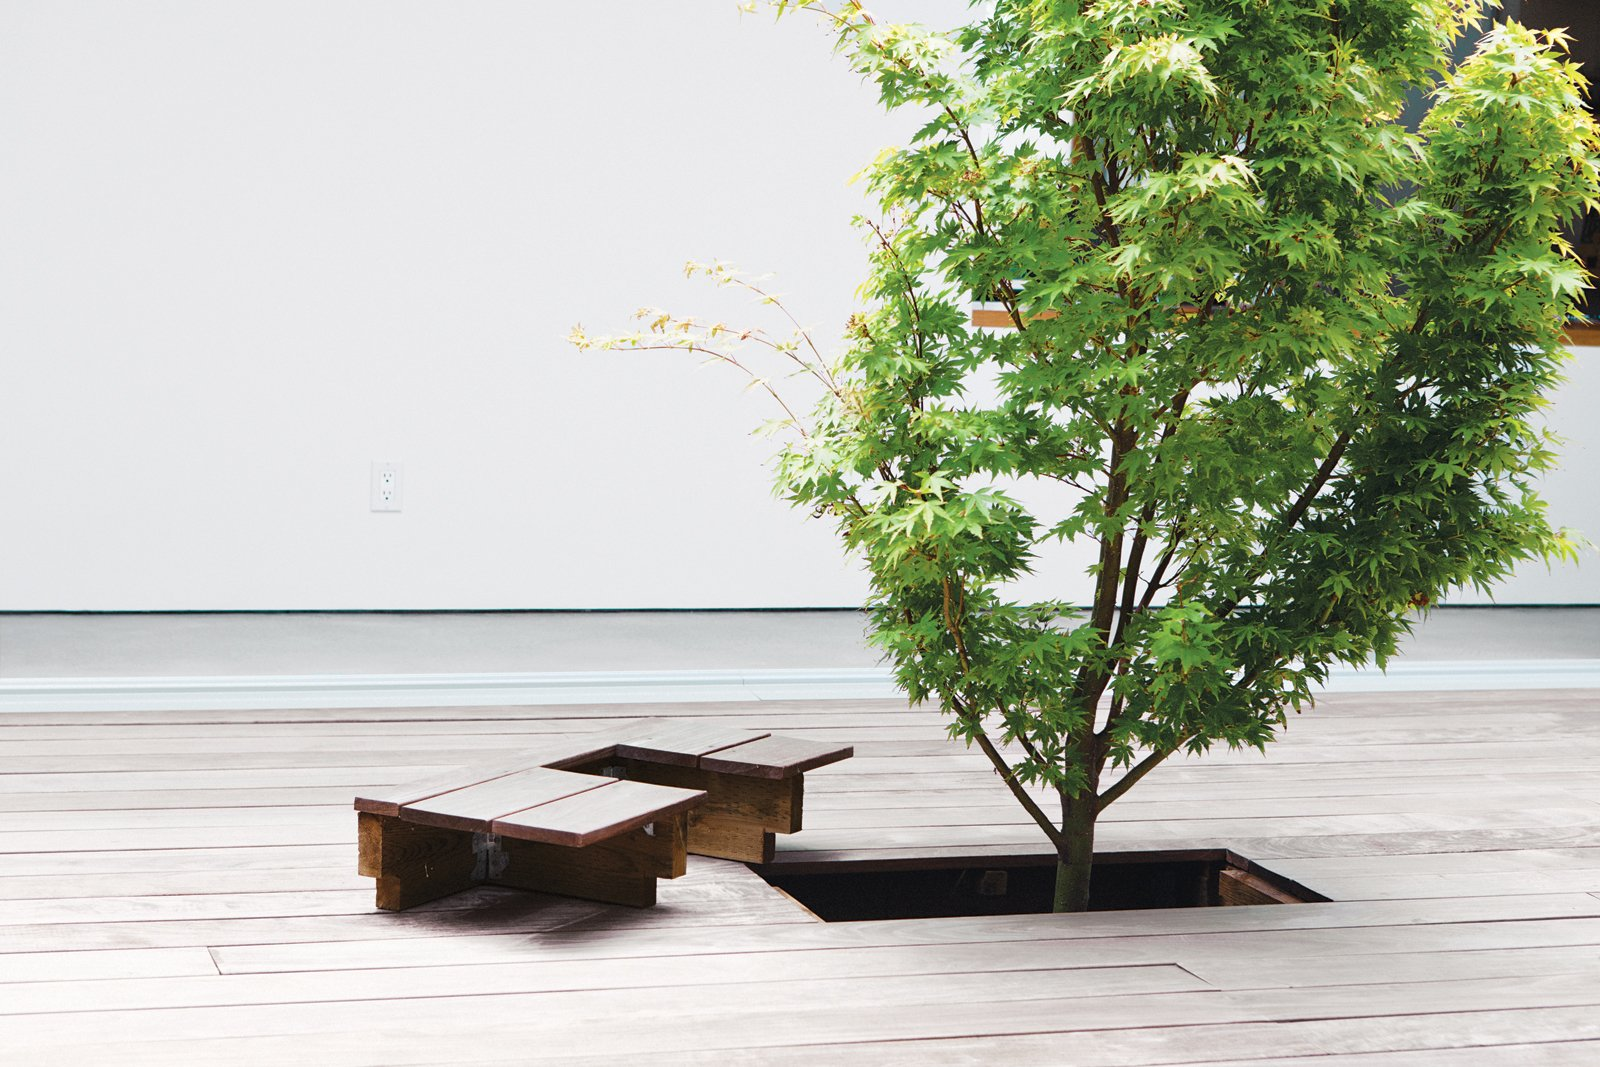 Because the Japanese maple in the courtyard had to be planted before the ipe deck was laid, Kurath designed a small removable panel to allow access to the tree's base. The Shozis can pull up the bit of decking to tend to the tree and replace it when they're through. And because the boards line up perfectly, only the gardener need know it's there.  Photo 8 of 16 in 15 Brilliant Designs That Work Around Nature